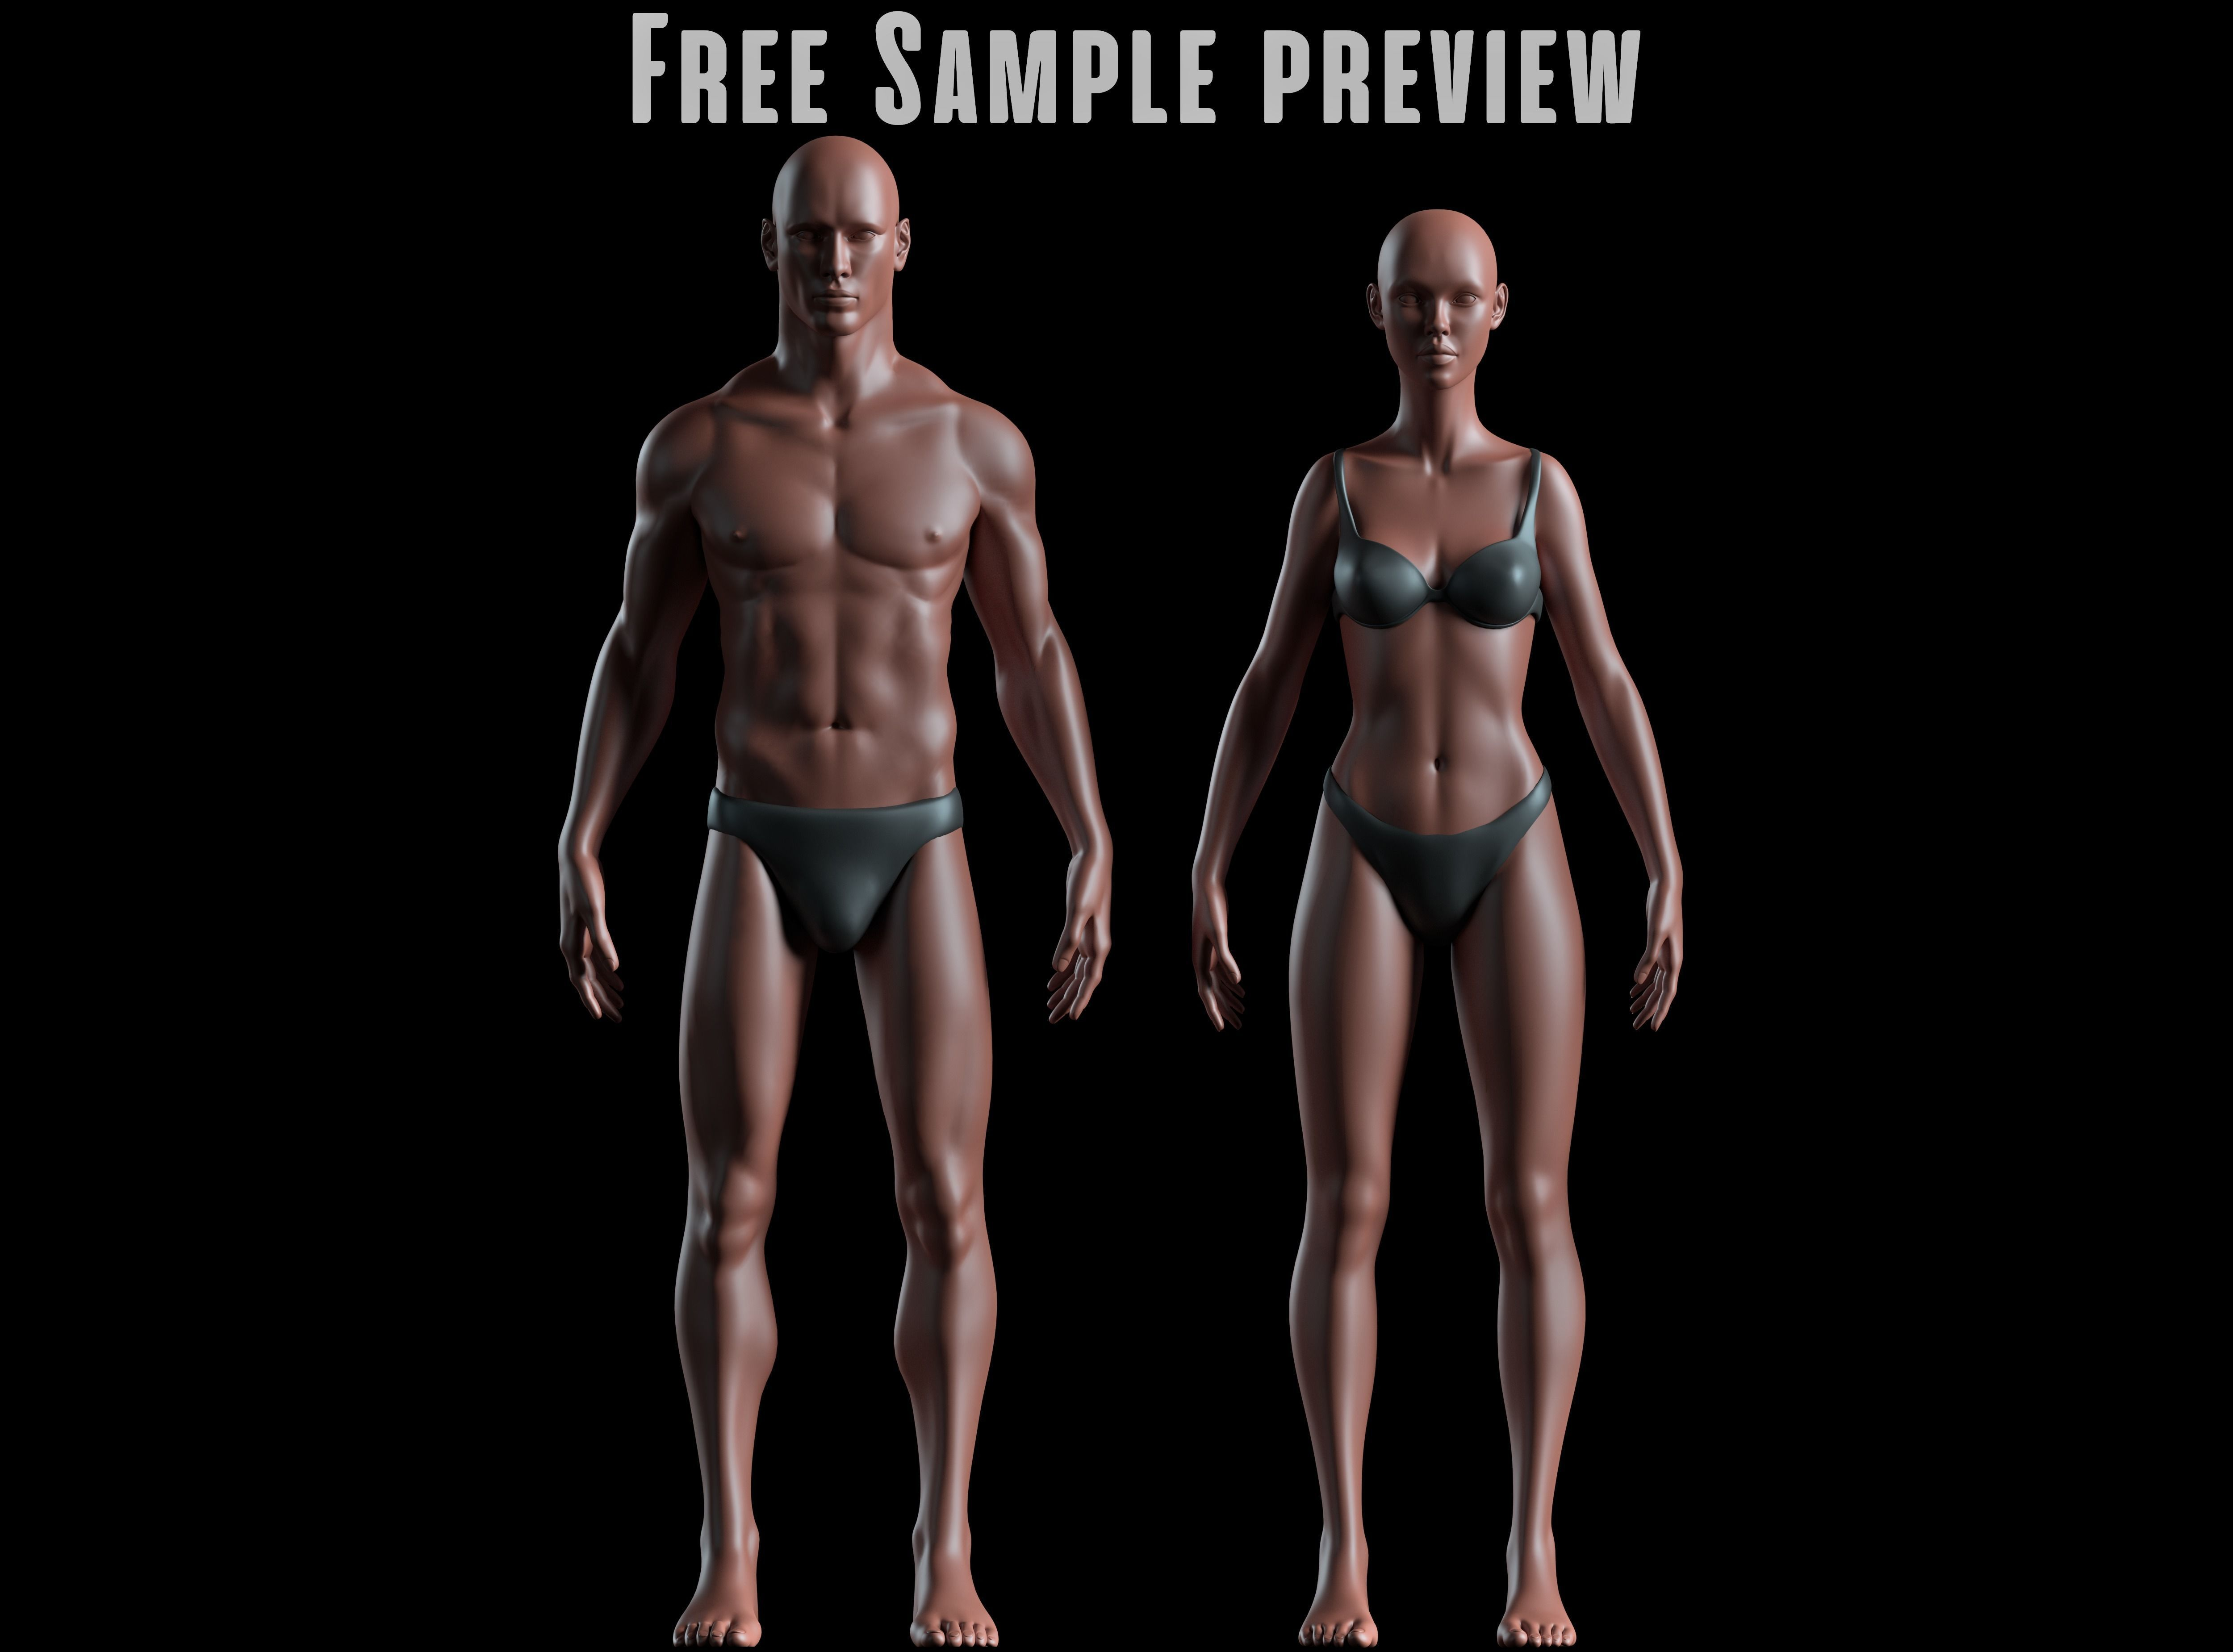 Realistic Human Basemesh - Male and Female - Free Sample Preview